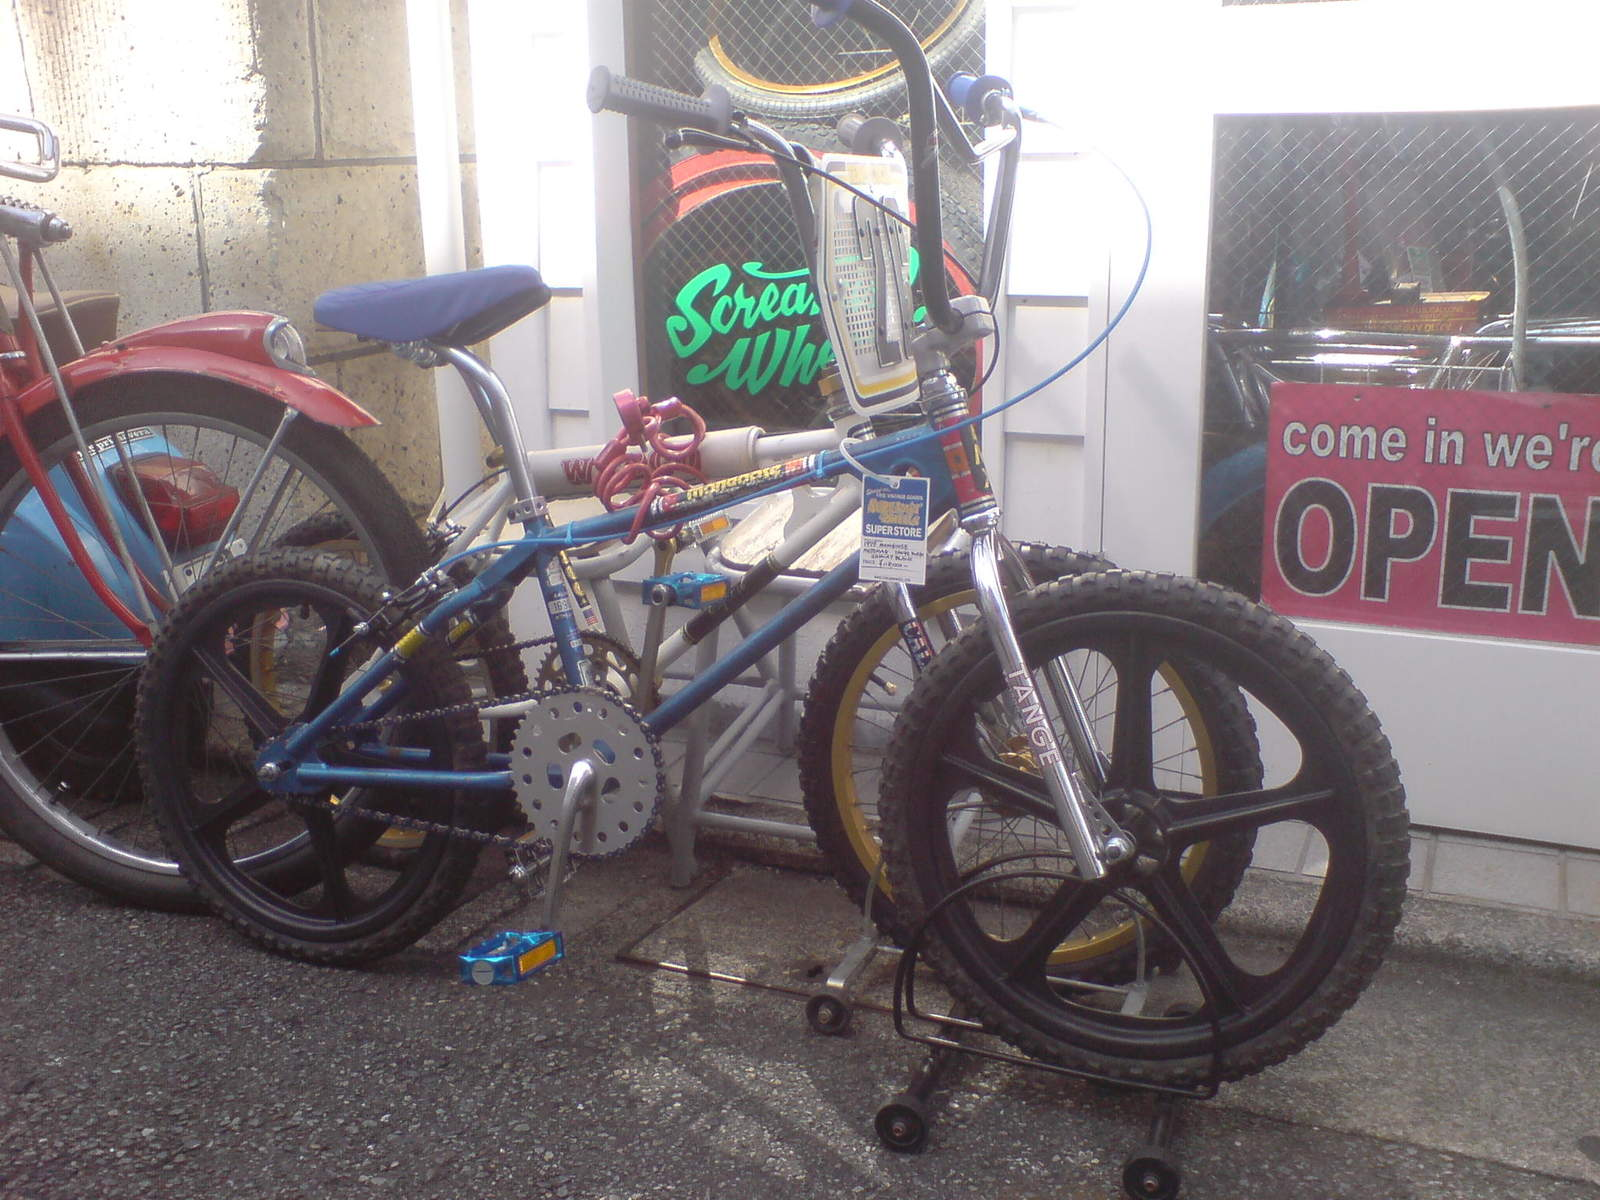 http://uploads.bmxmuseum.com/user-images/47558/screamin-wheels-2596086beb7.jpg